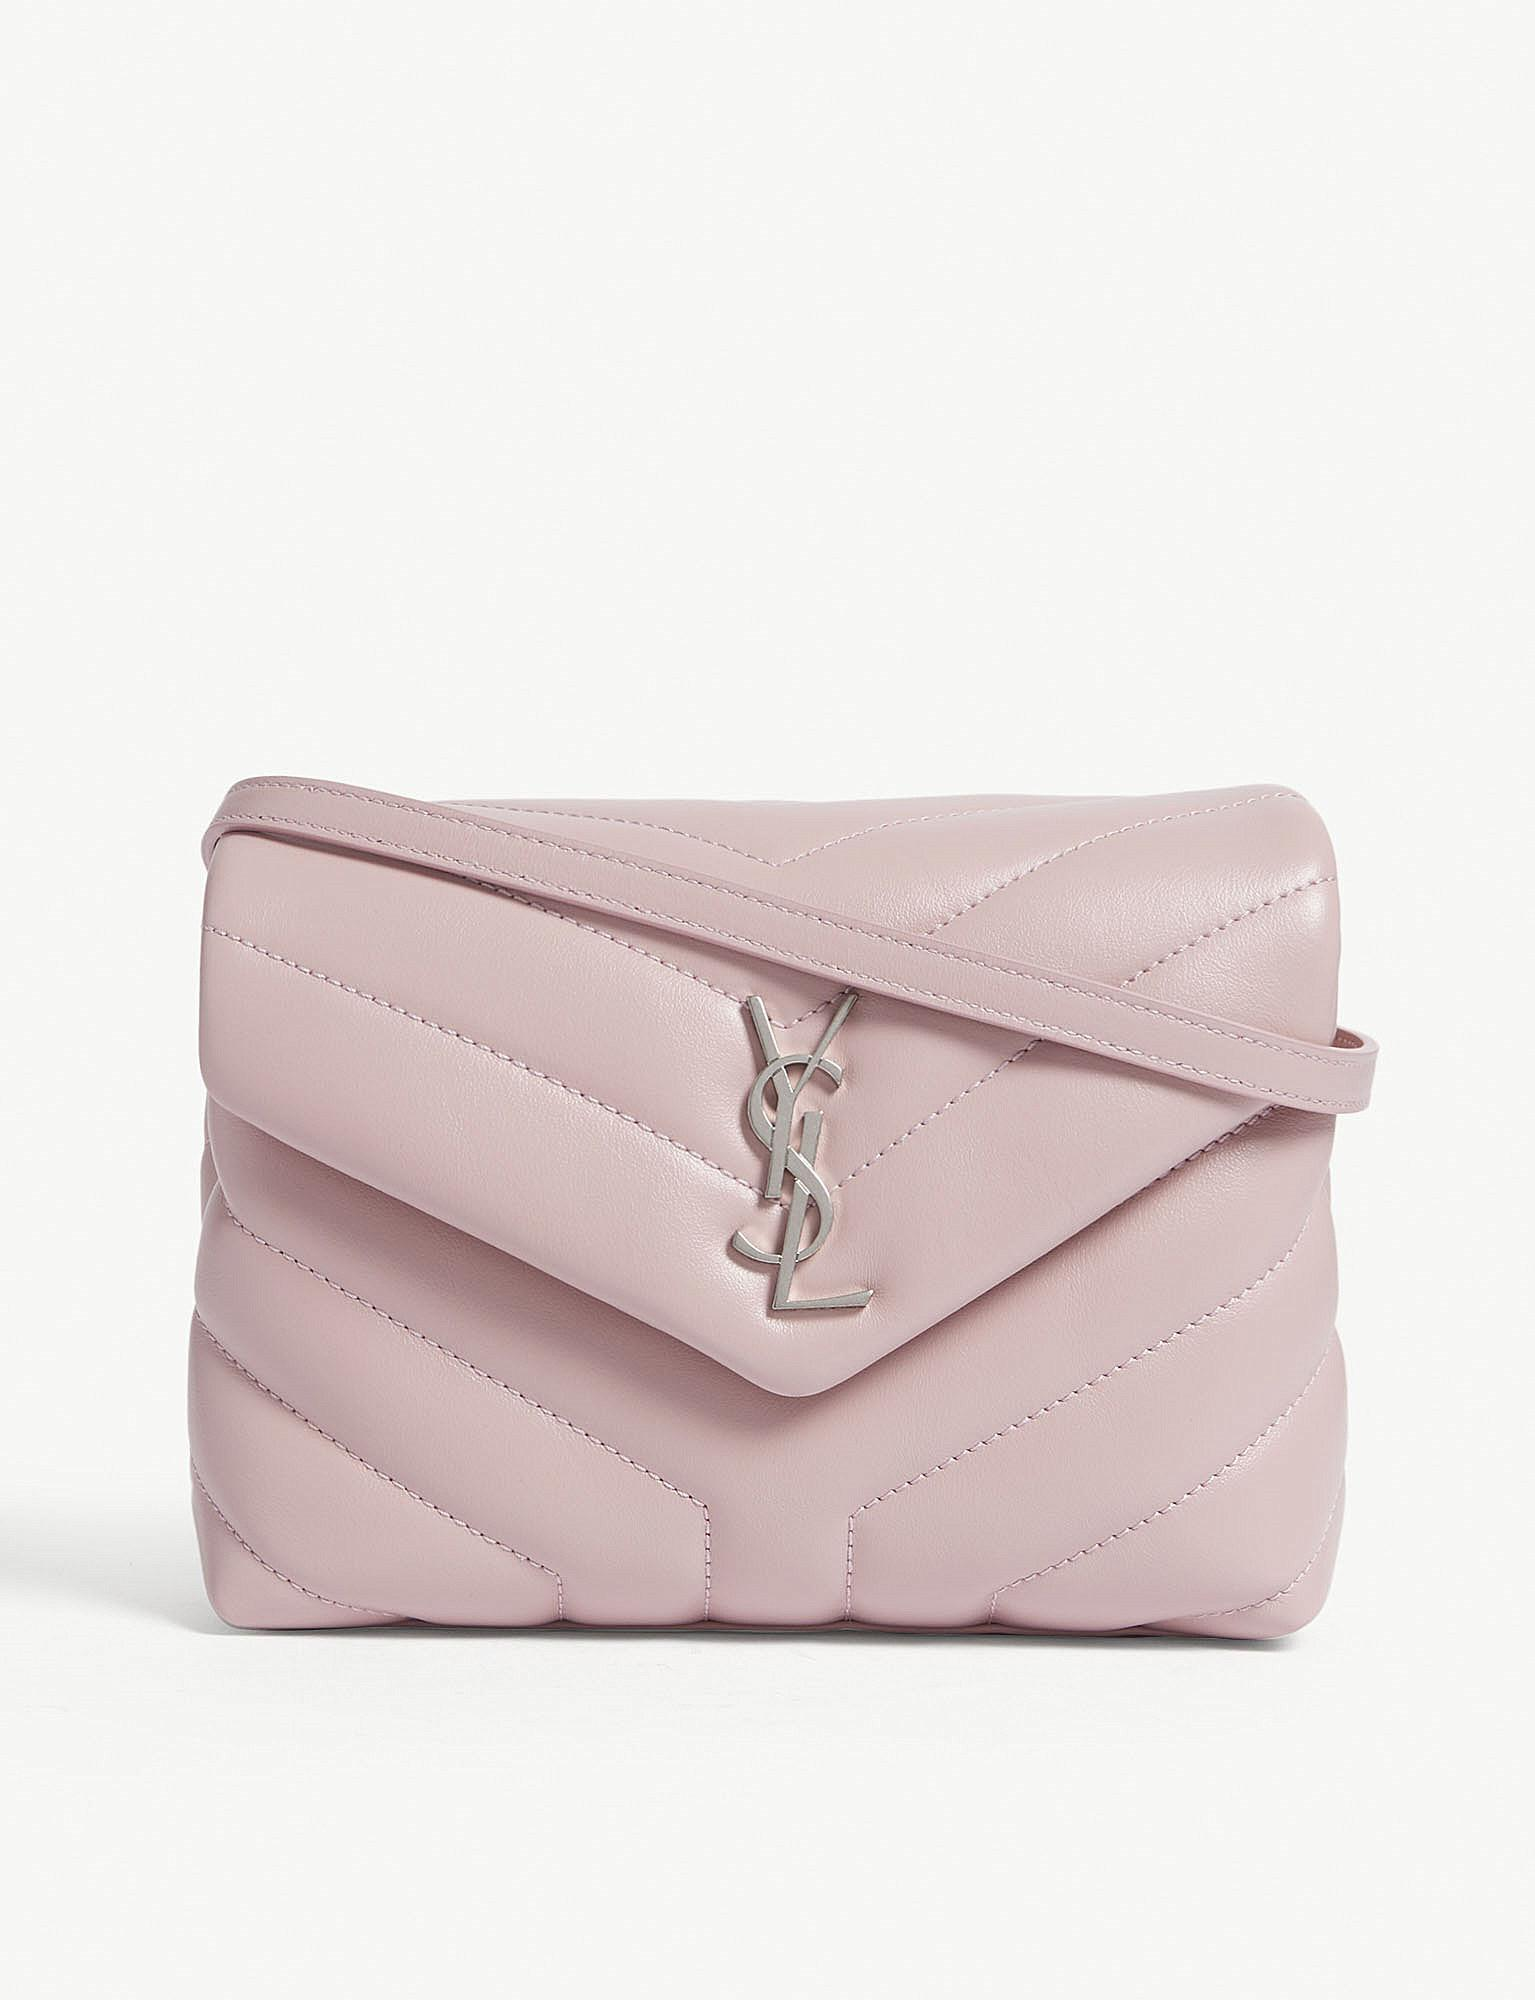 18fdf89ee81e Saint Laurent. Women s Tender Pink Monogram Loulou Quilted Leather Cross  Body Bag